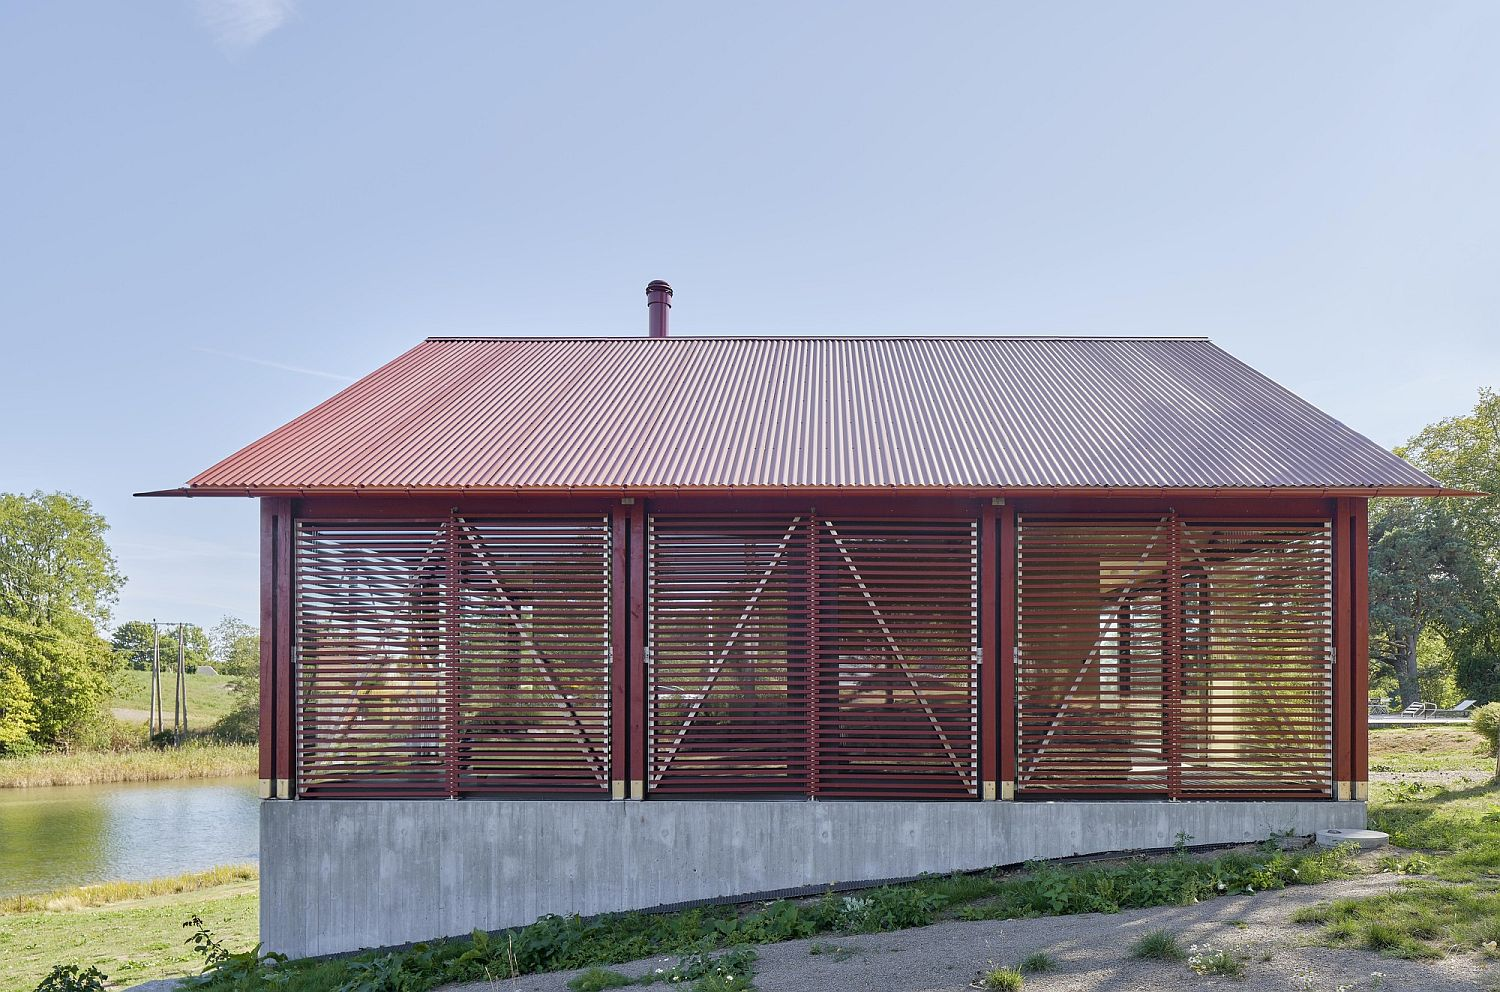 Wooden shutters and glass create the outer shell of the pavilion style cabin